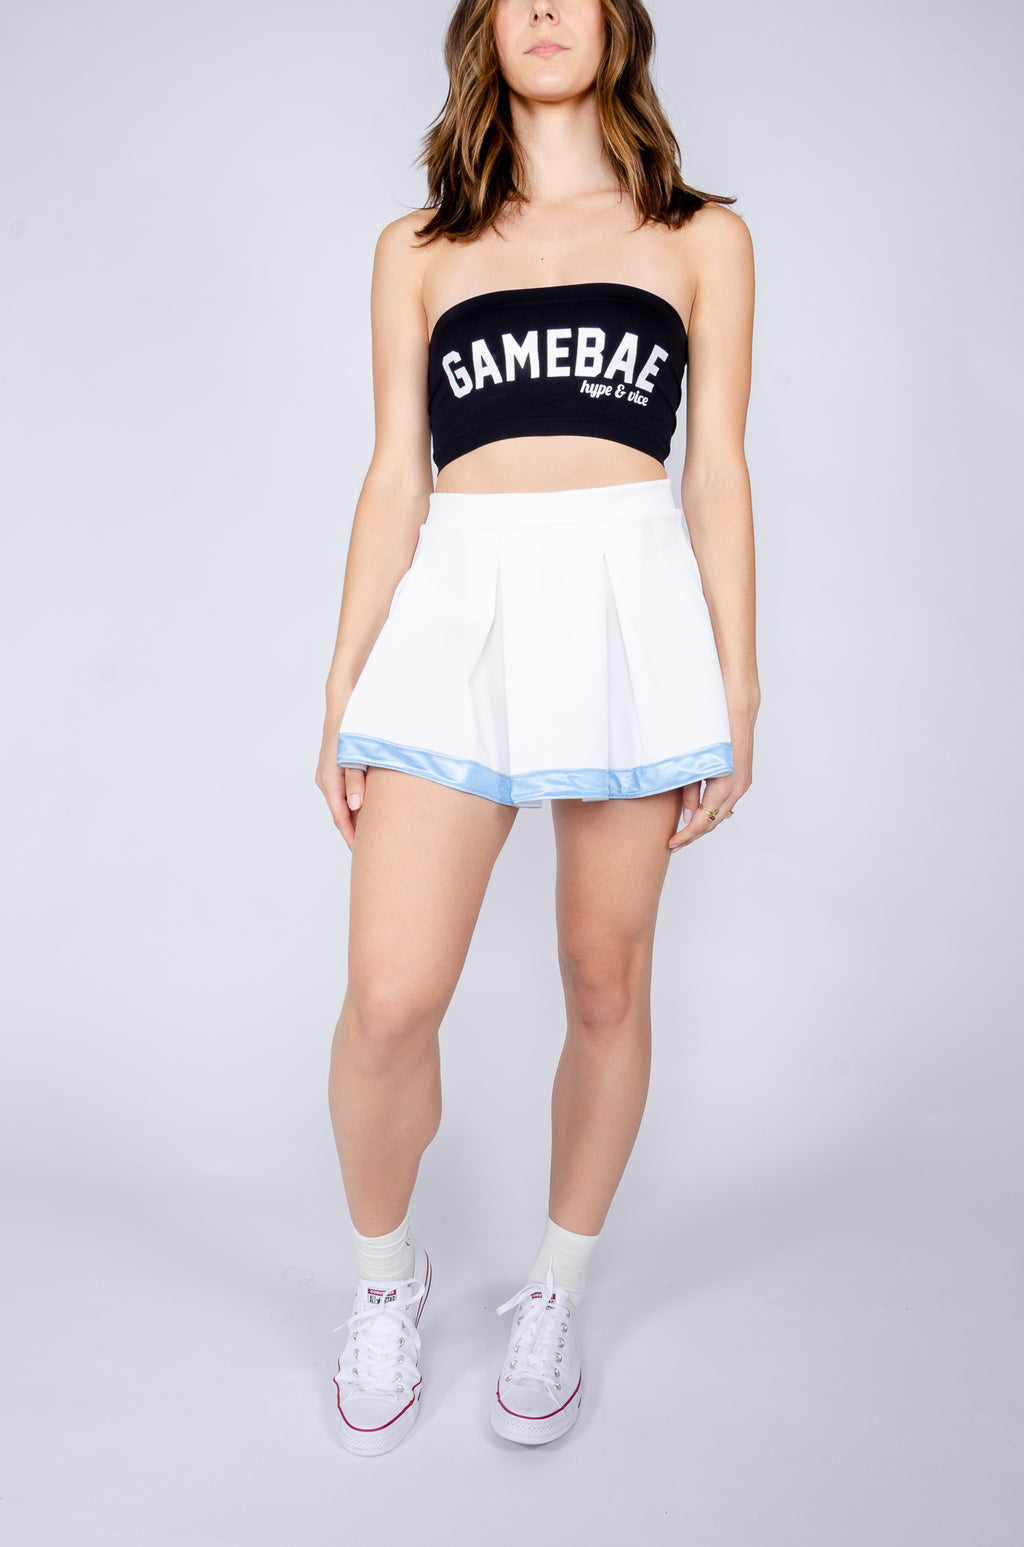 White and Blue Tailgate Skirt - Hype and Vice